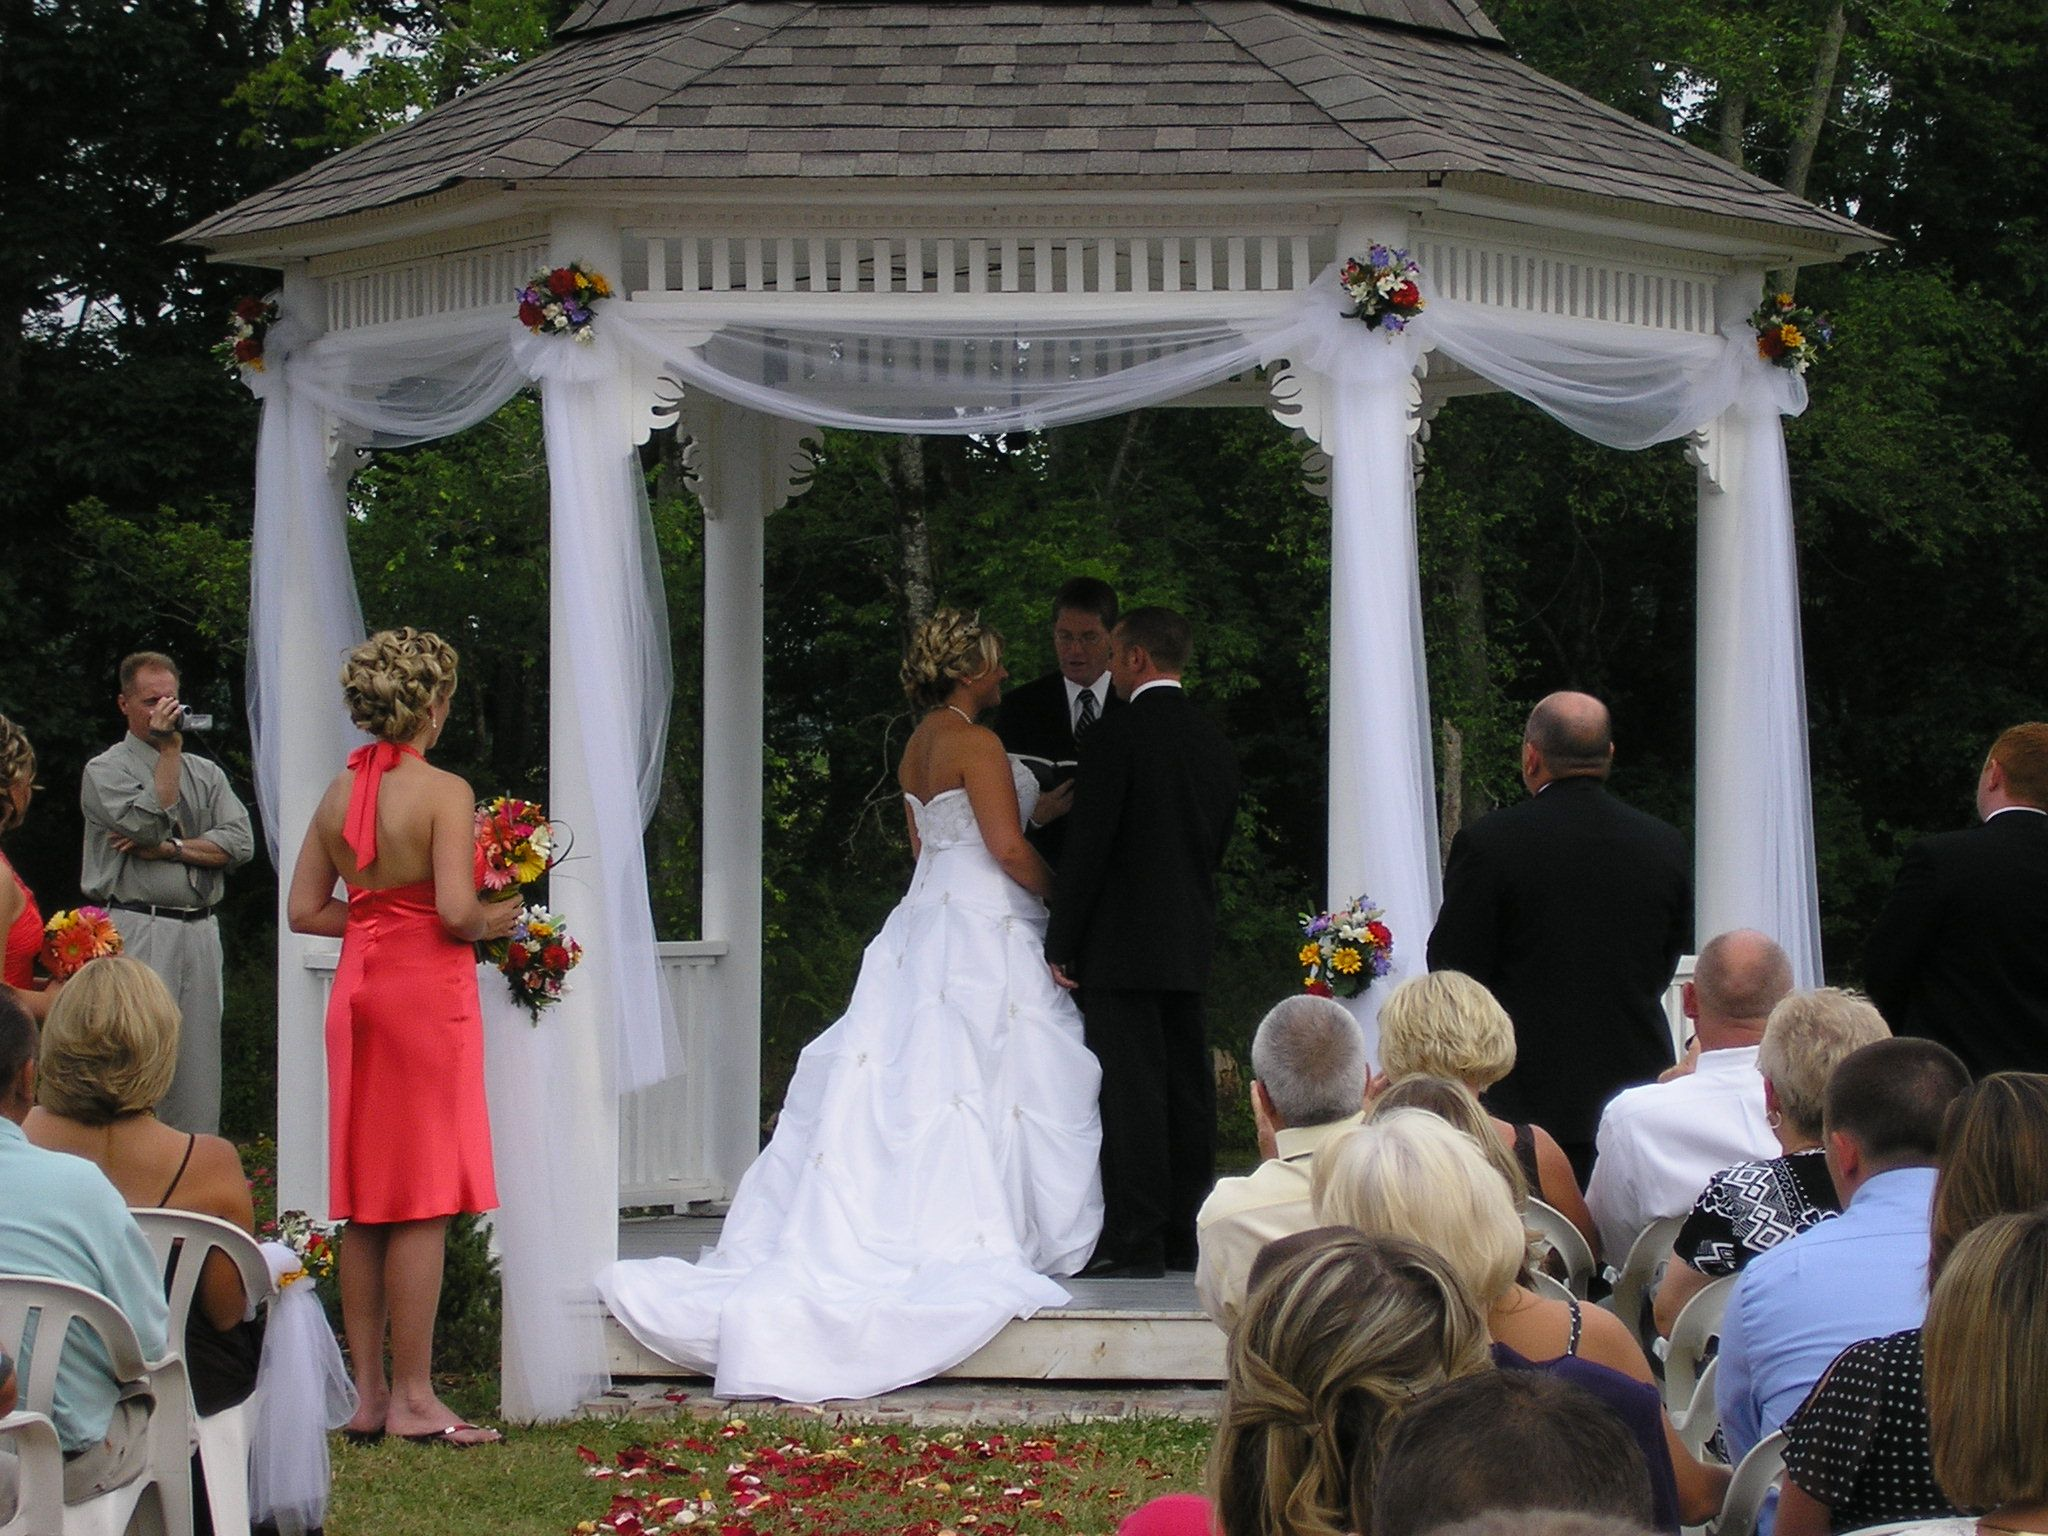 Wedding gazebo decorations a little white tulle and for Wedding ceremony table decorations